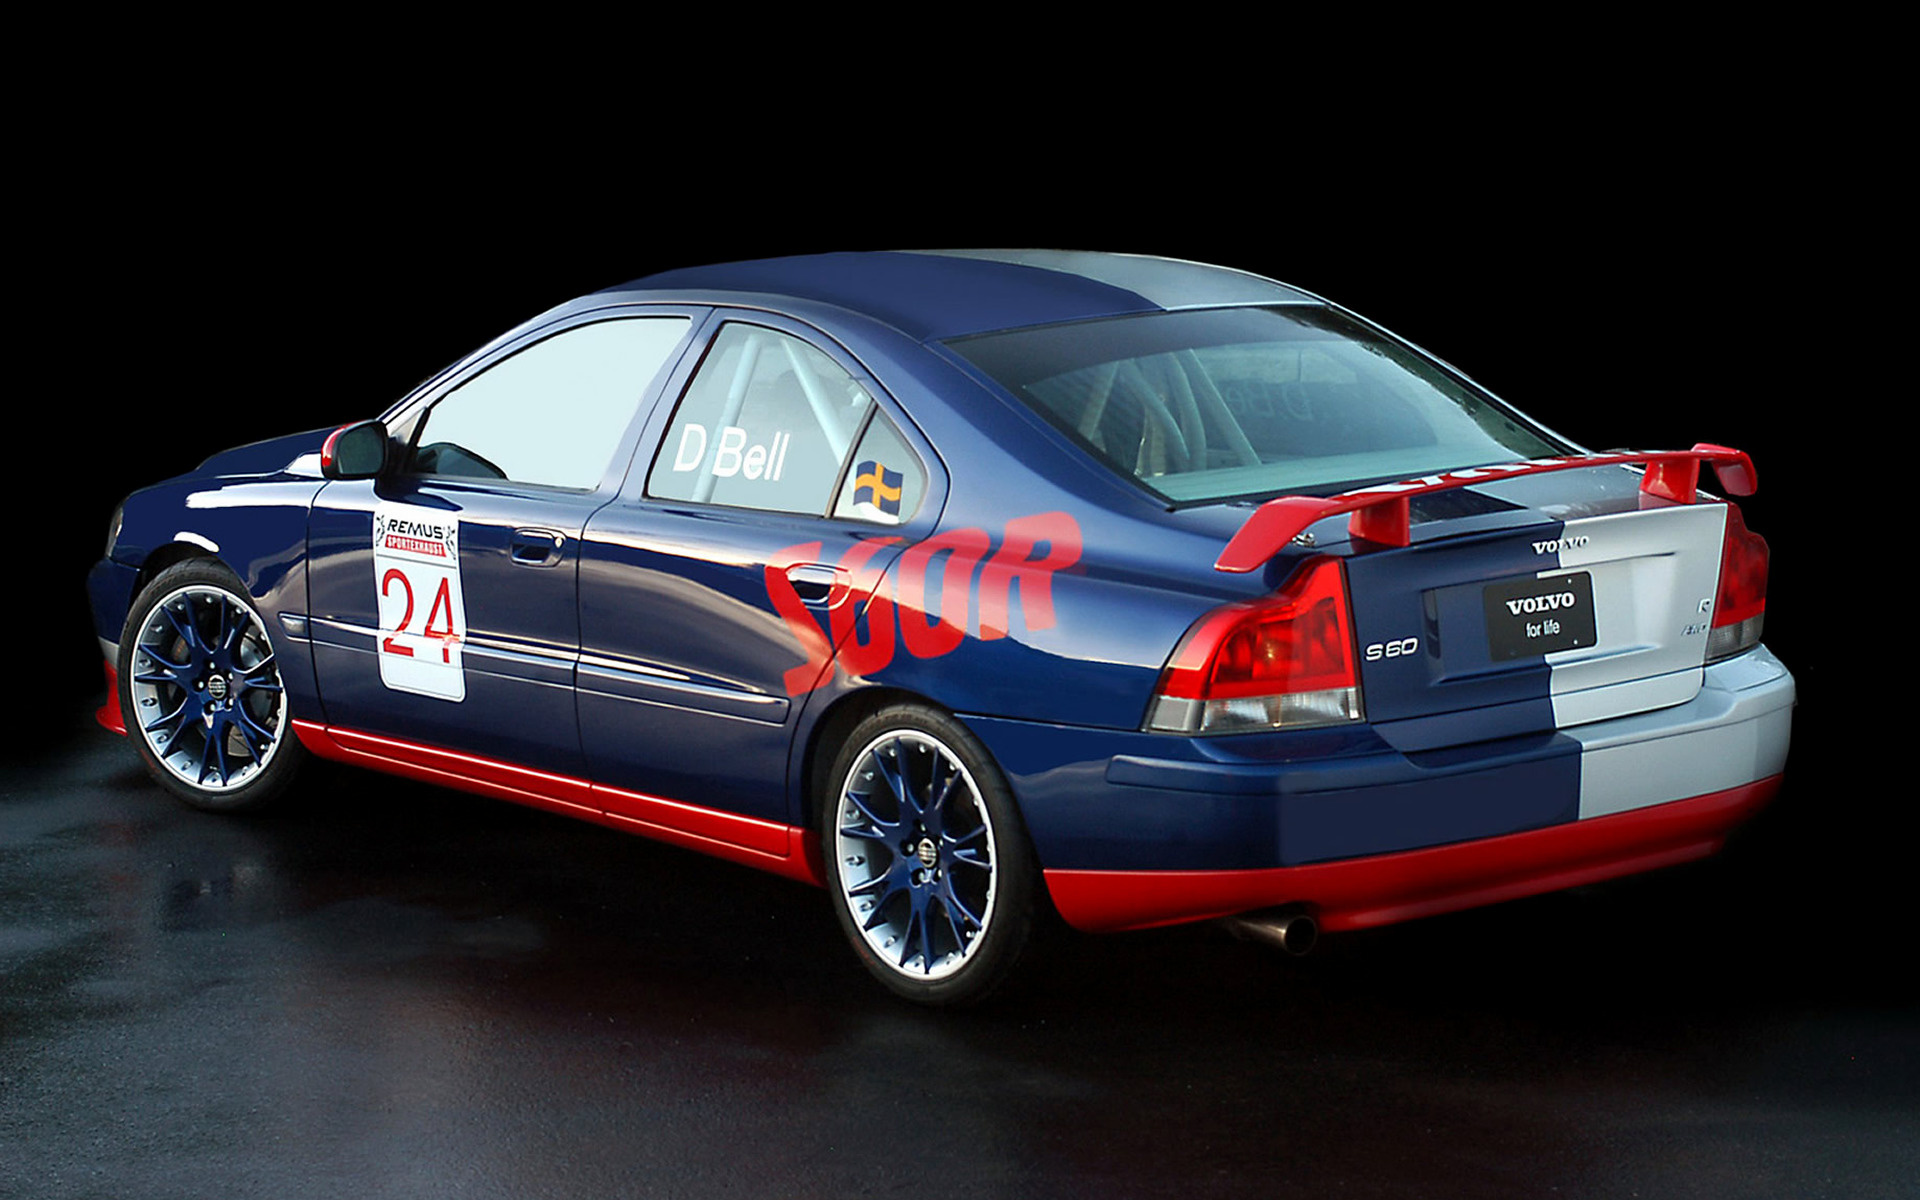 Volvo S60 R GT Racing (2004) Wallpapers and HD Images - Car Pixel